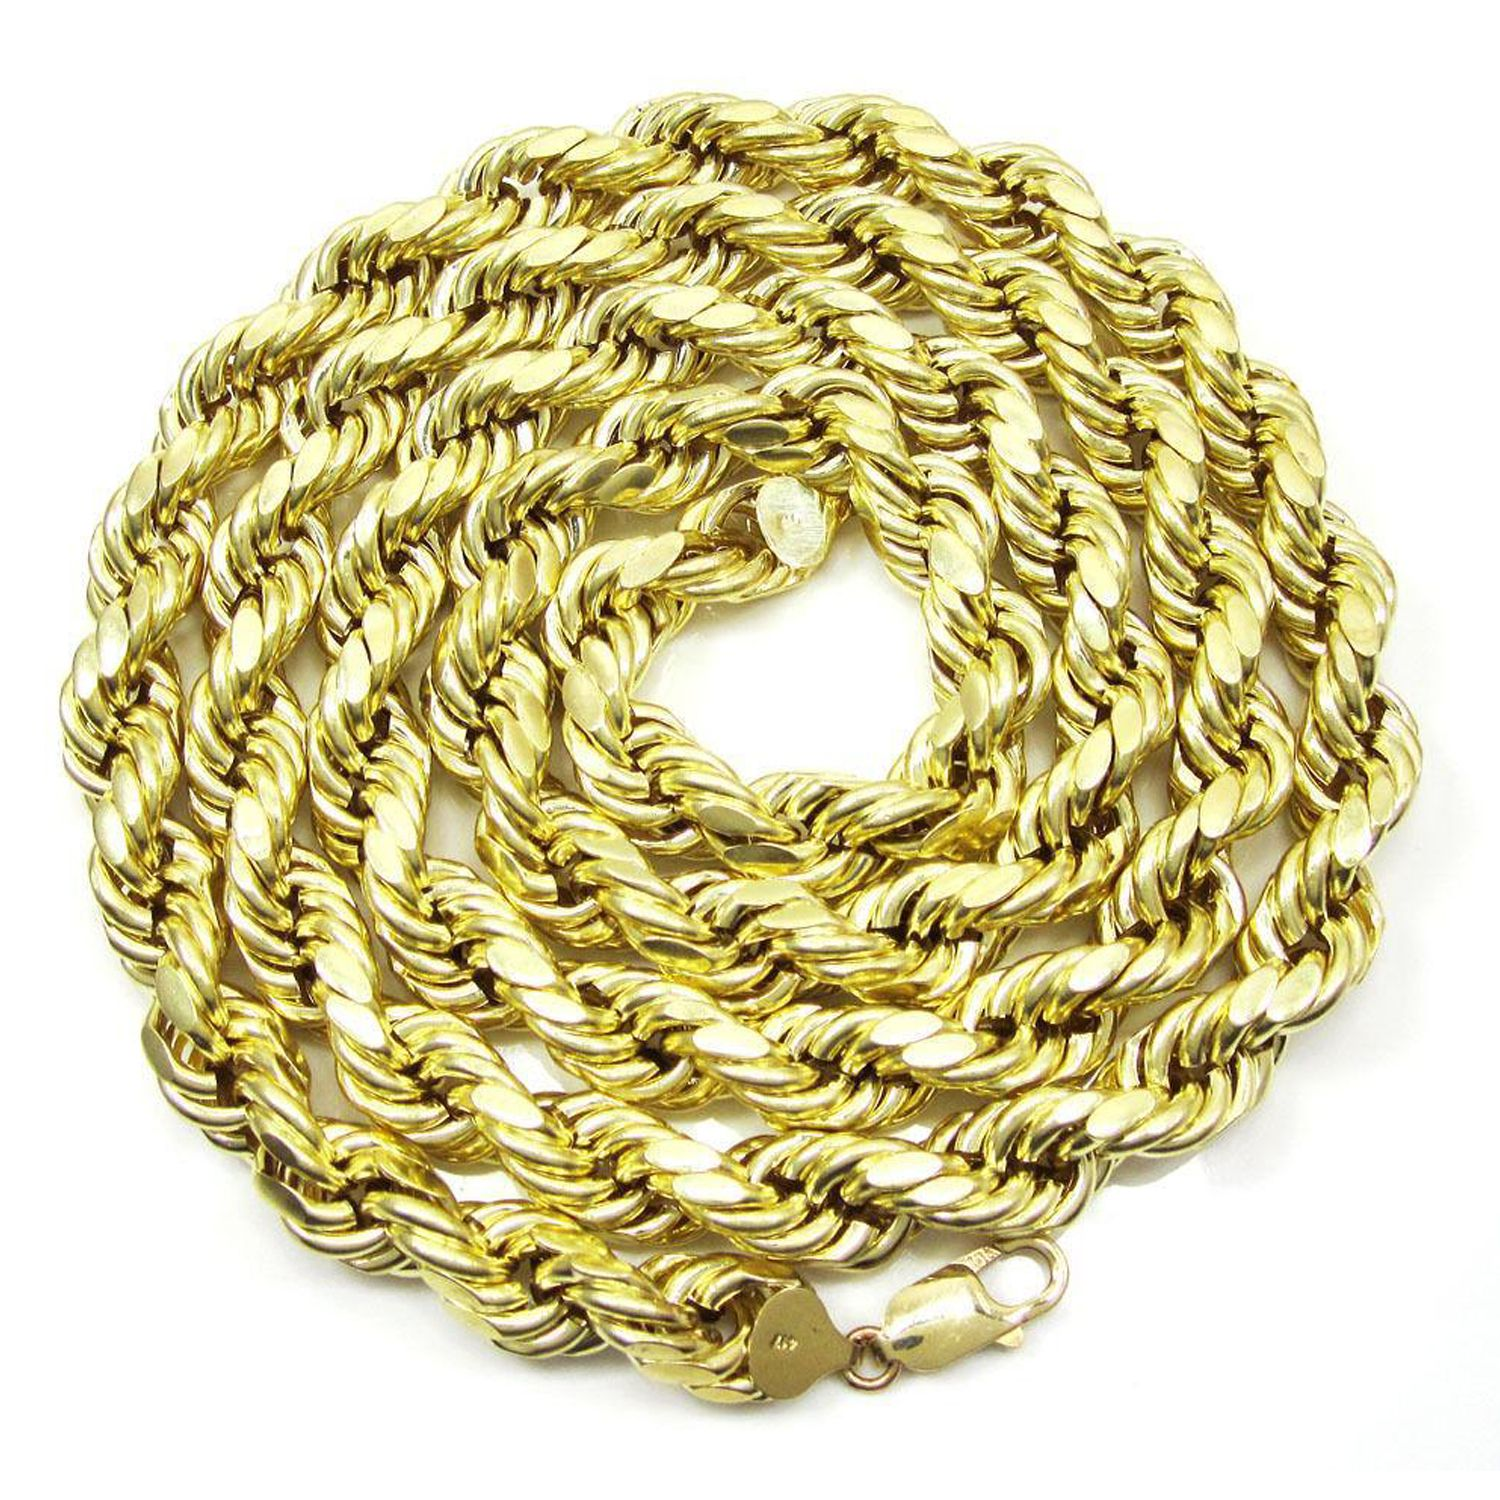 Pin On Rope Chains